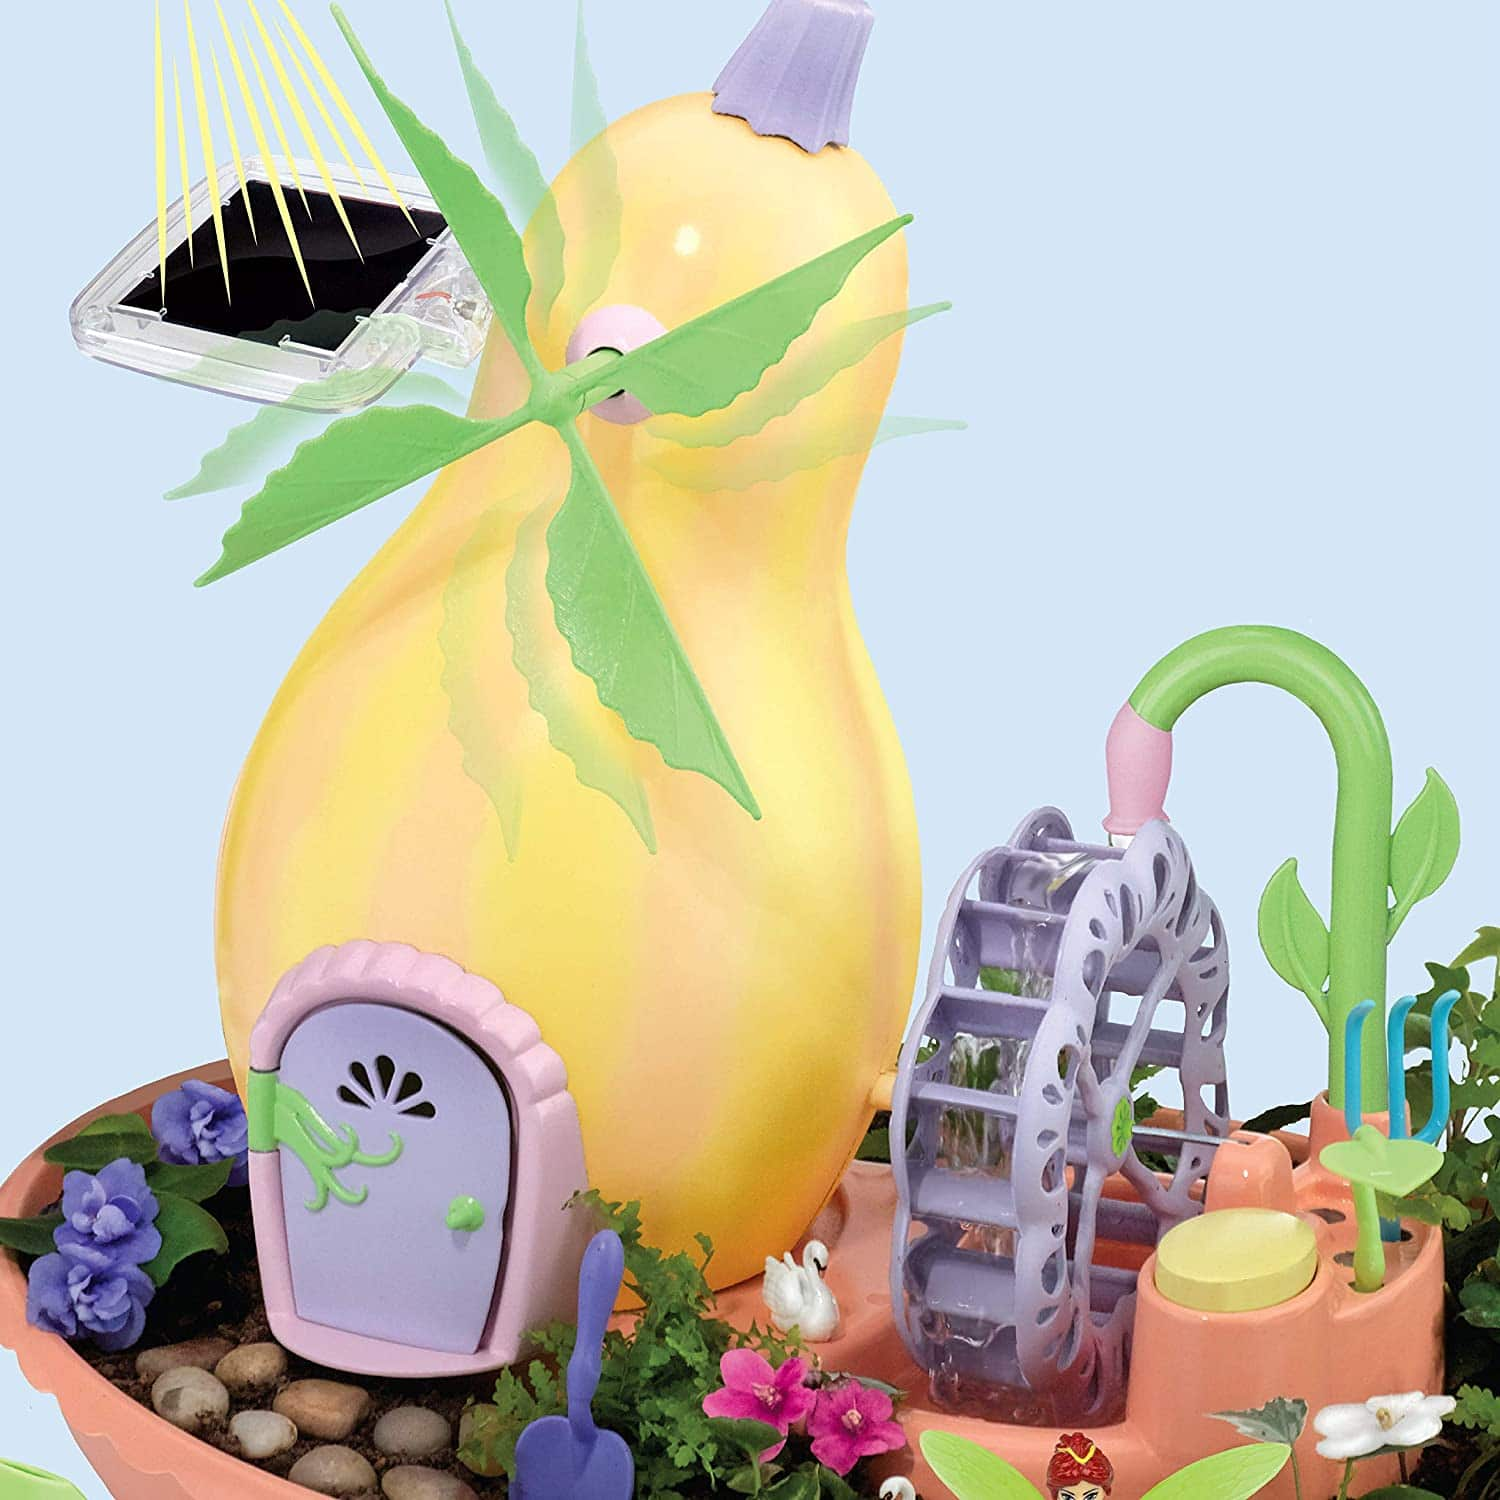 My Fairy Garden Windmill Terrace Solar Power Playset $17.92 + Free Shipping w/ Prime or on $25+